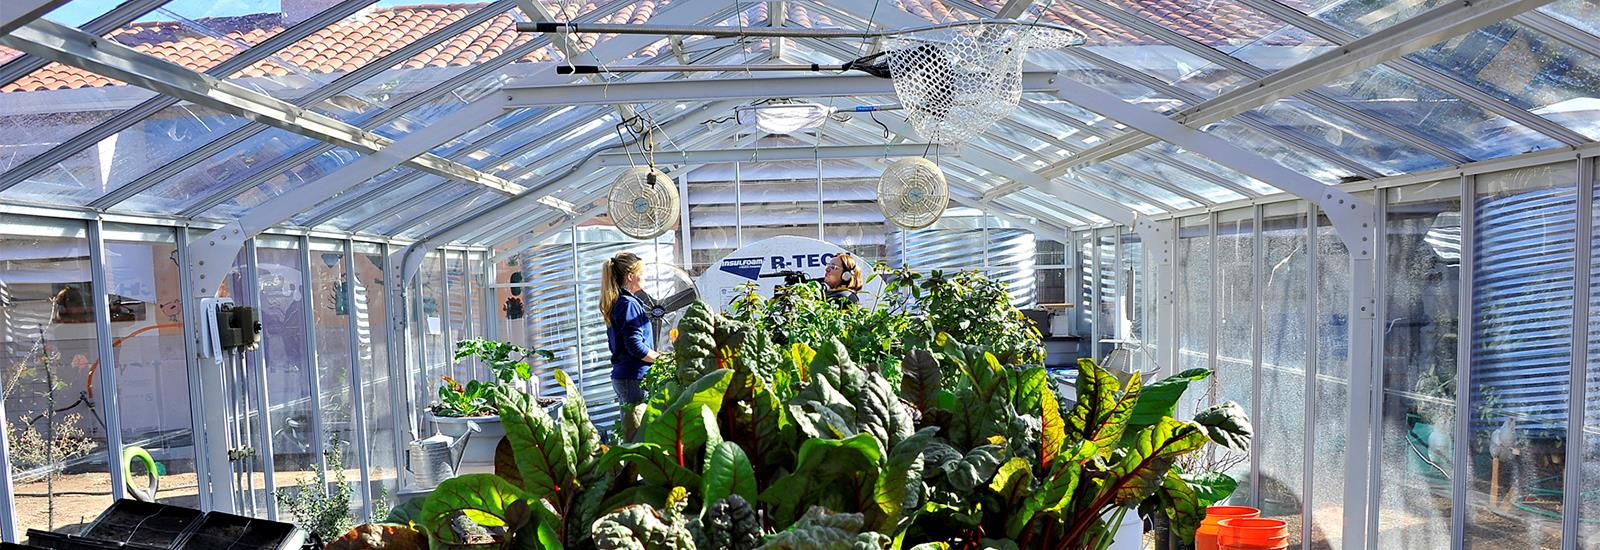 Our green house offers an exciting learning environment.